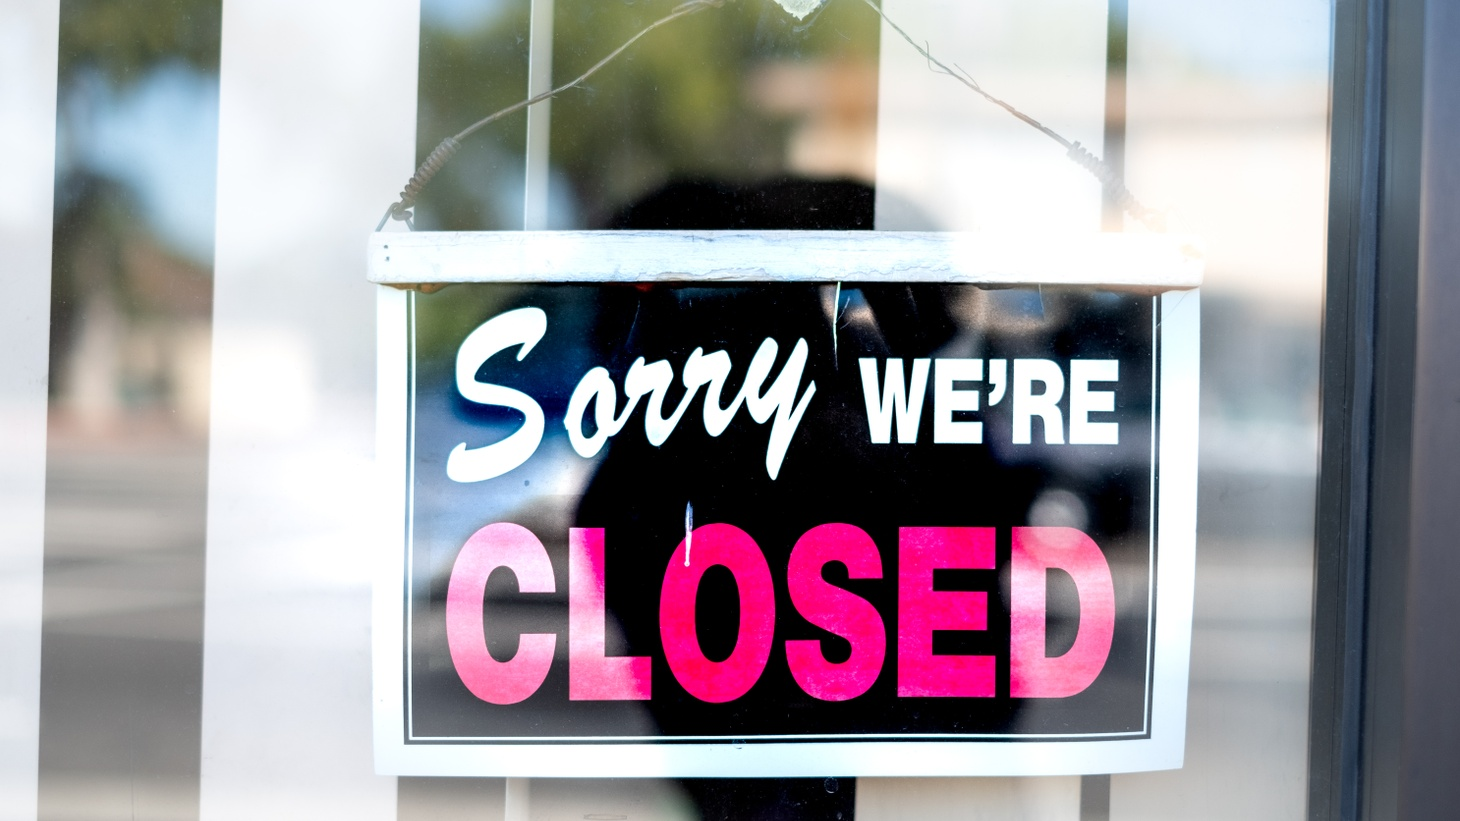 Many businesses have shut down due to coronavirus, and they might not rebound for a long time.